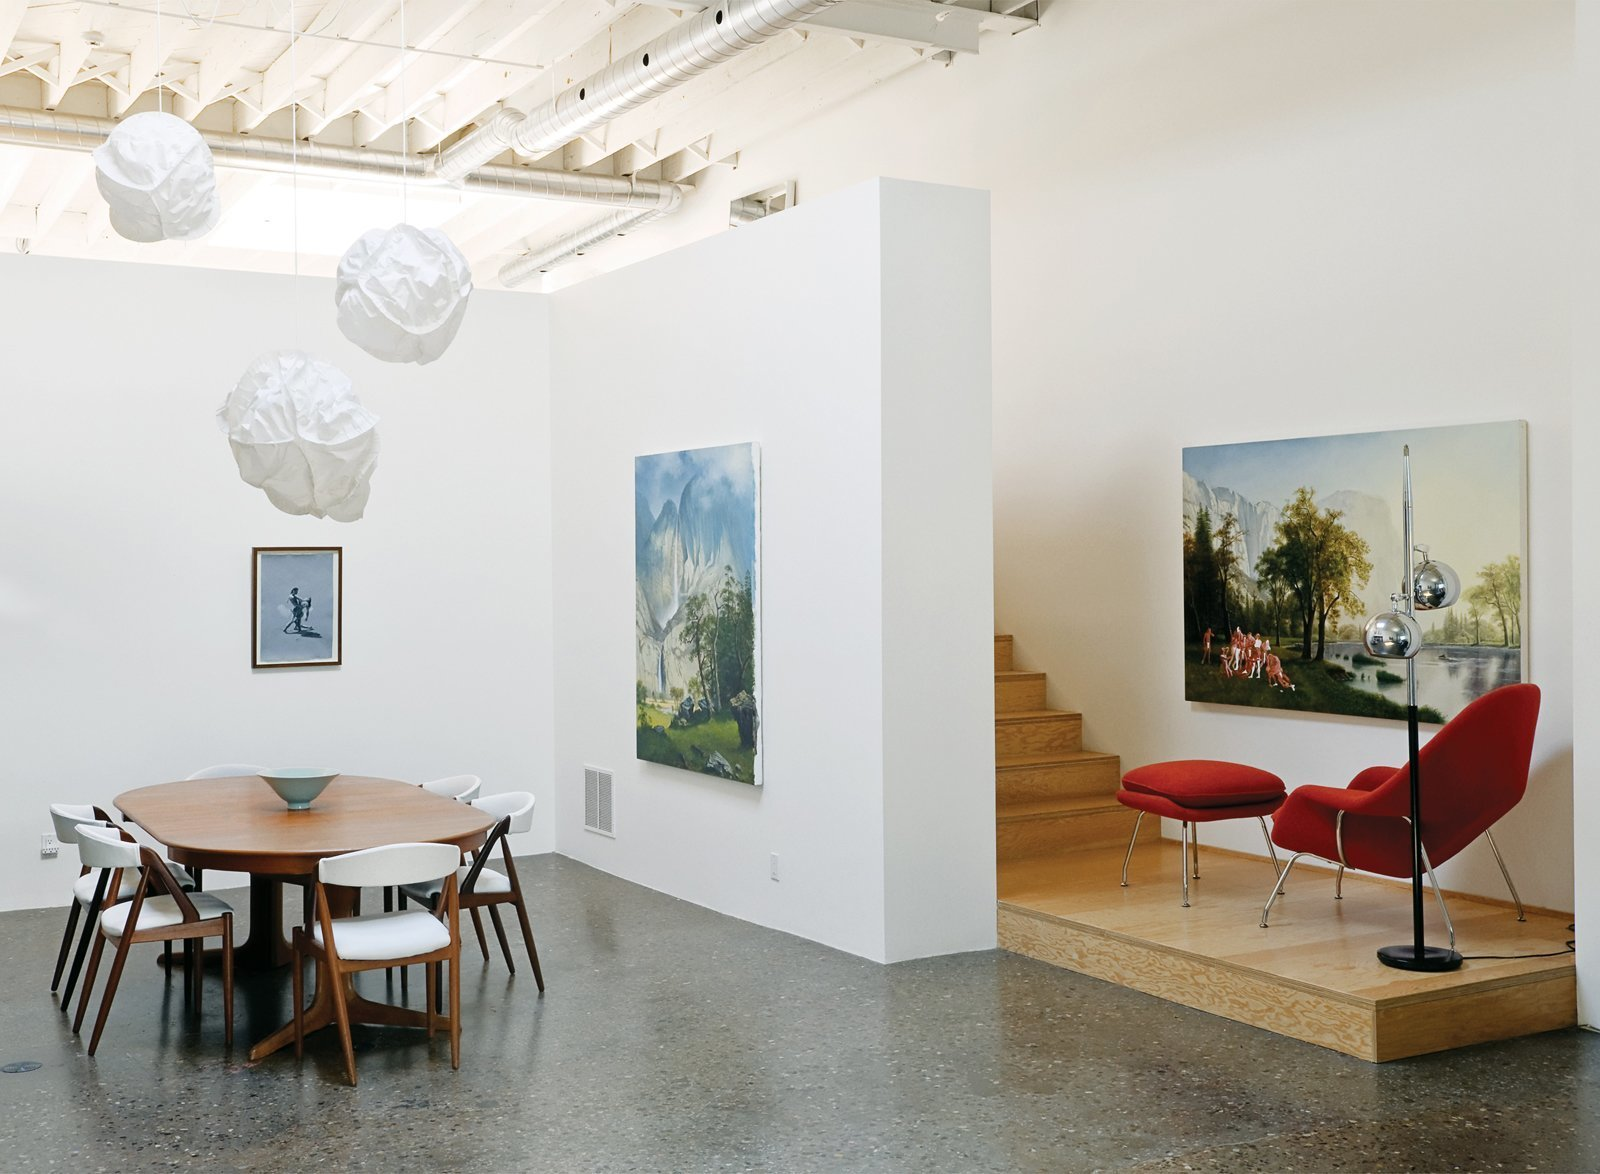 6 Main Things To Consider When Designing Your Home Art Gallery - Photo 2 of 7